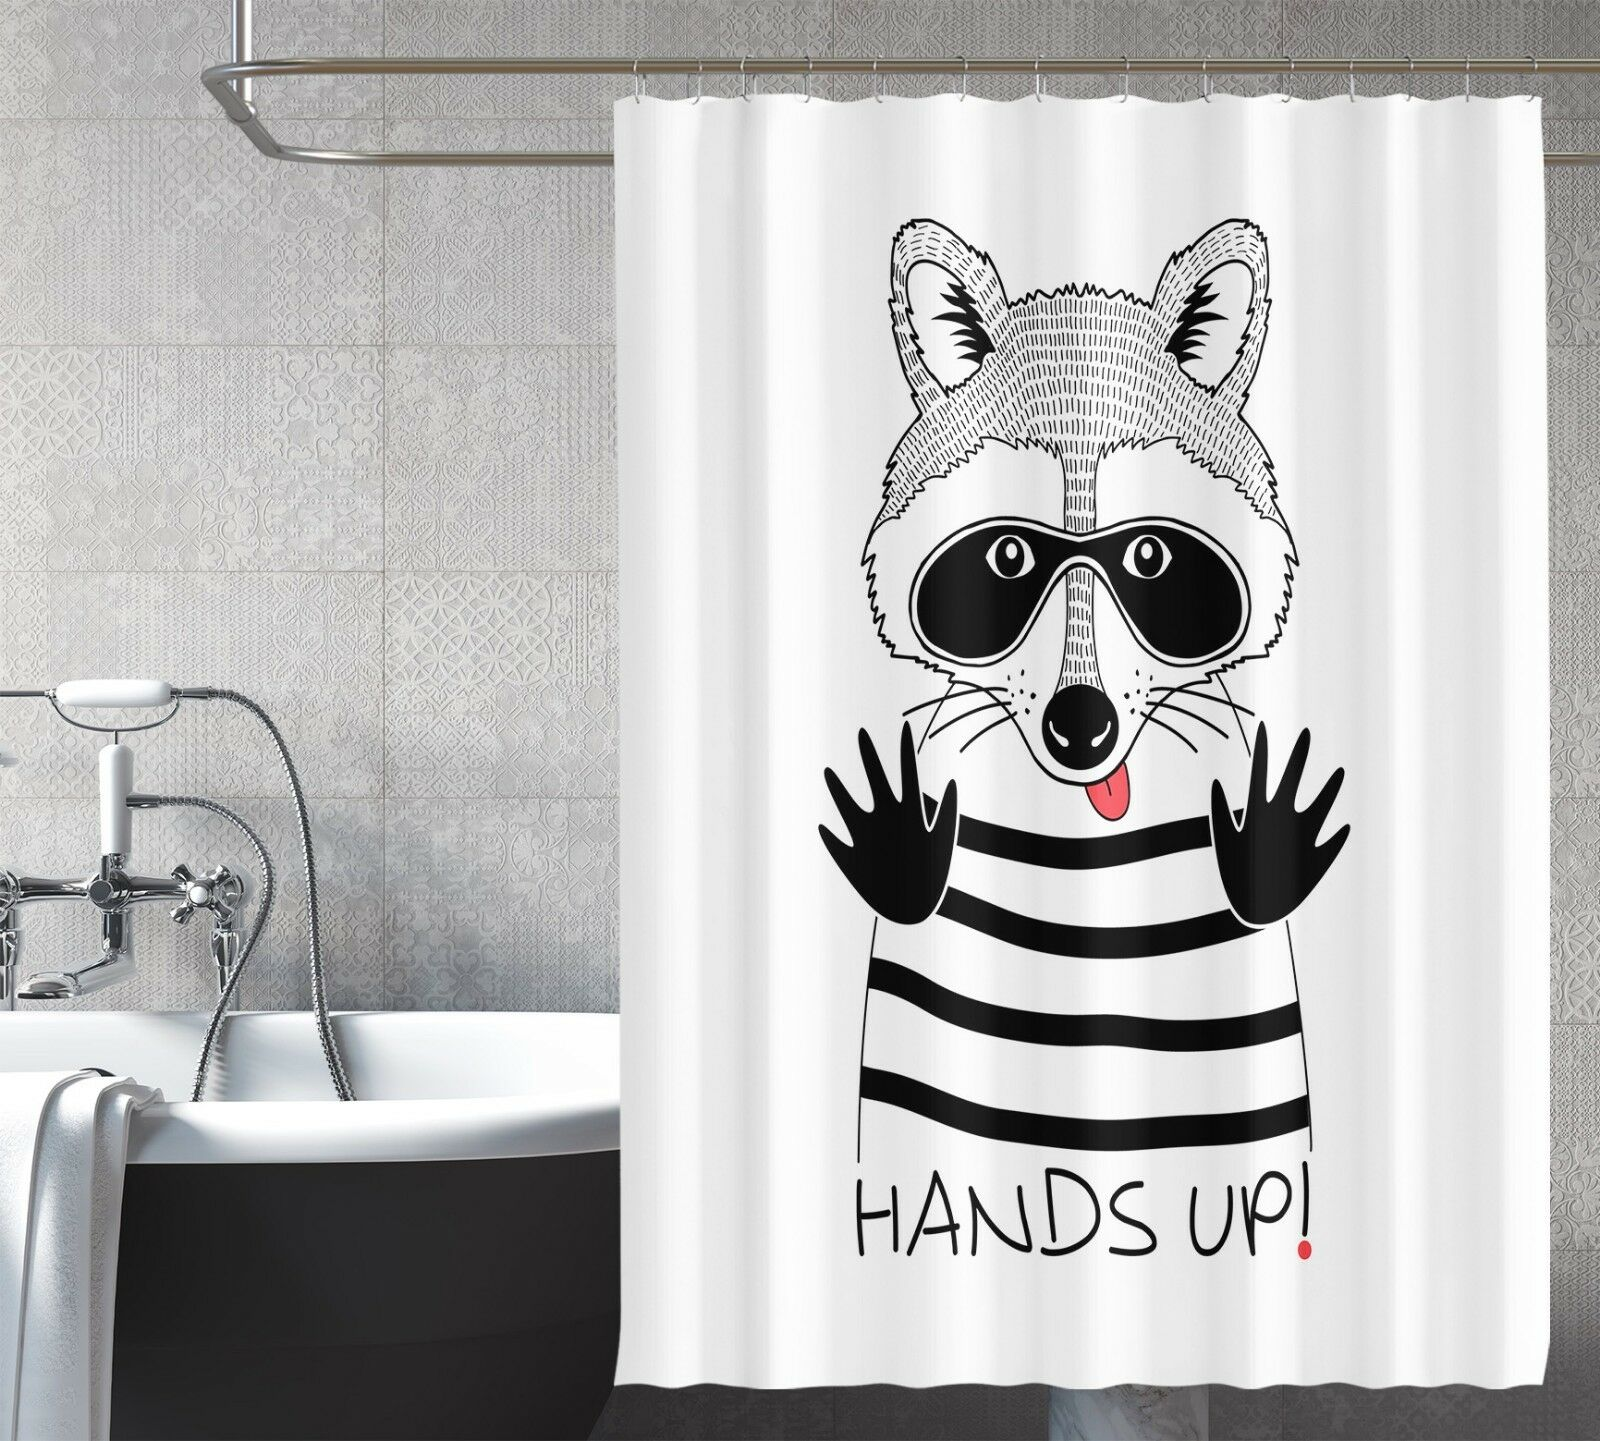 3D Raccoon Cartoon 8 Shower Curtain Waterproof Fiber Bathroom Windows Toilet 31398b